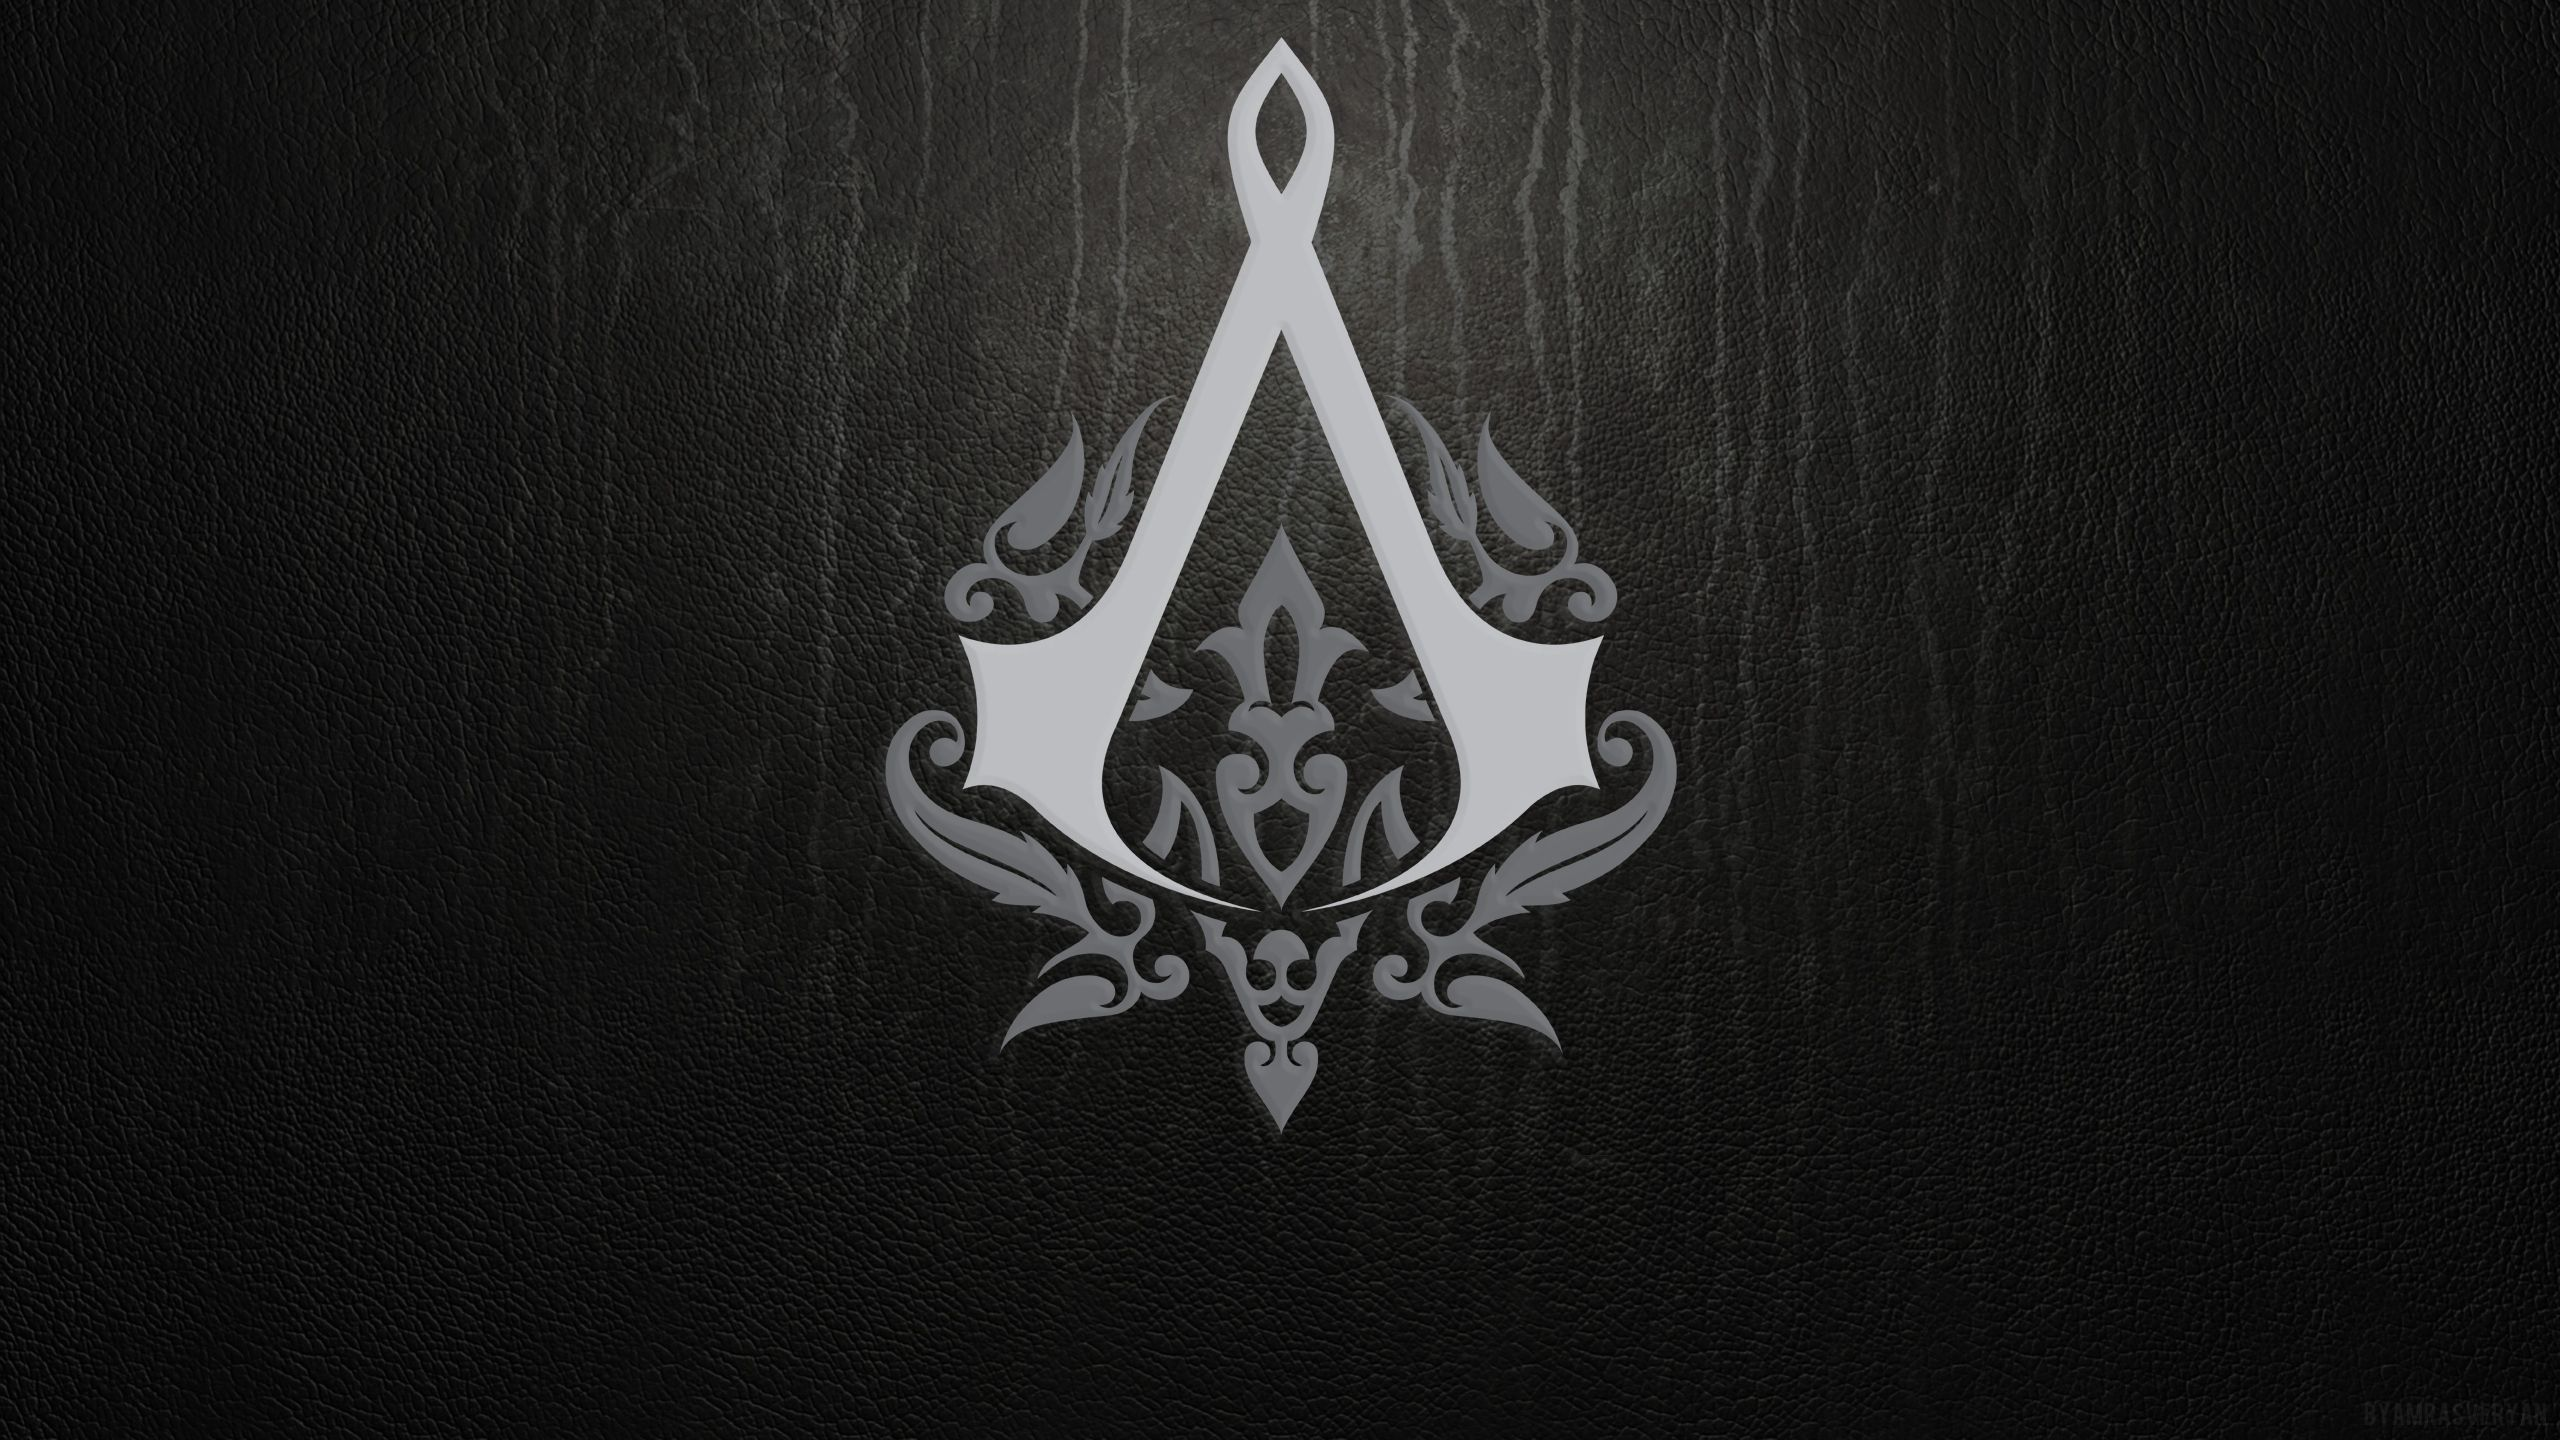 Assassin Symbol Wallpapers Top Free Assassin Symbol Backgrounds